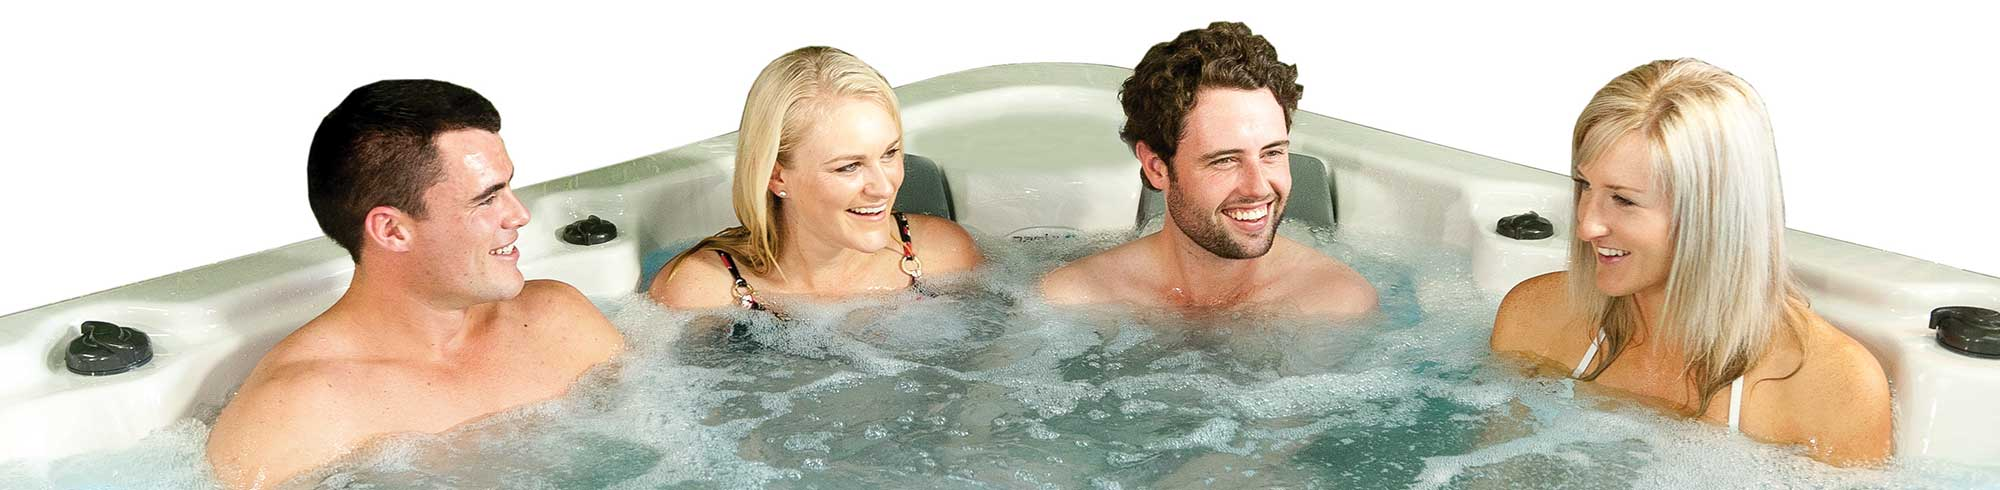 four people in an Oasis spa pool